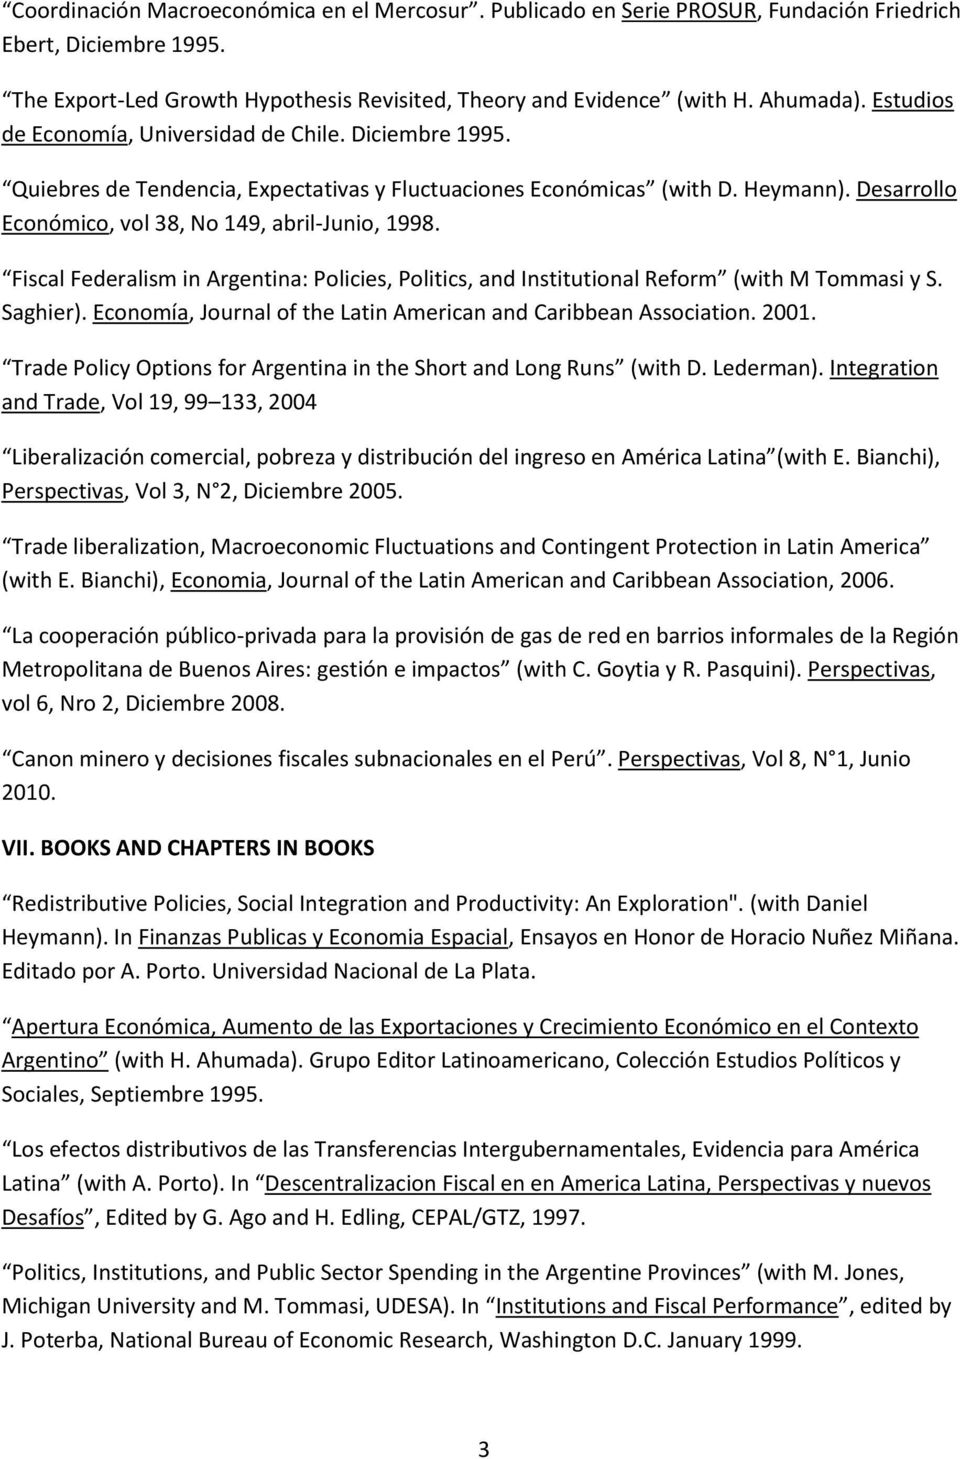 Fiscal Federalism in Argentina: Policies, Politics, and Institutional Reform (with M Tommasi y S. Saghier). Economía, Journal of the Latin American and Caribbean Association. 2001.